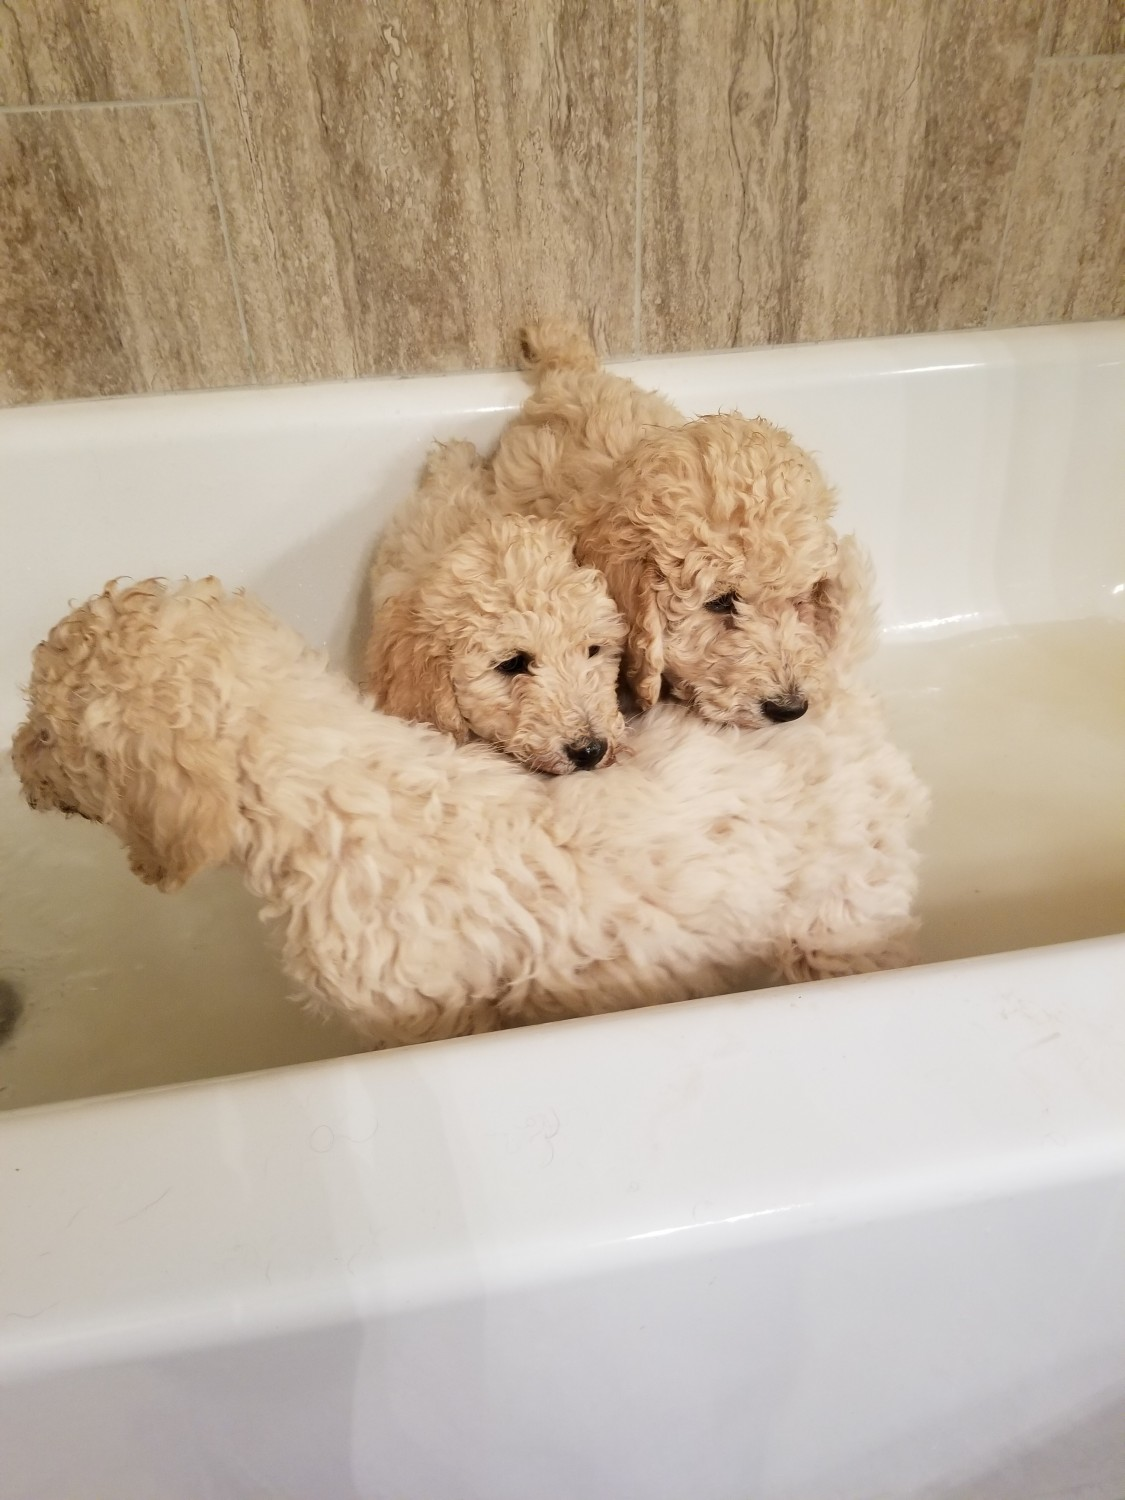 Poodle Puppies for sale in Saskatchewan Canada